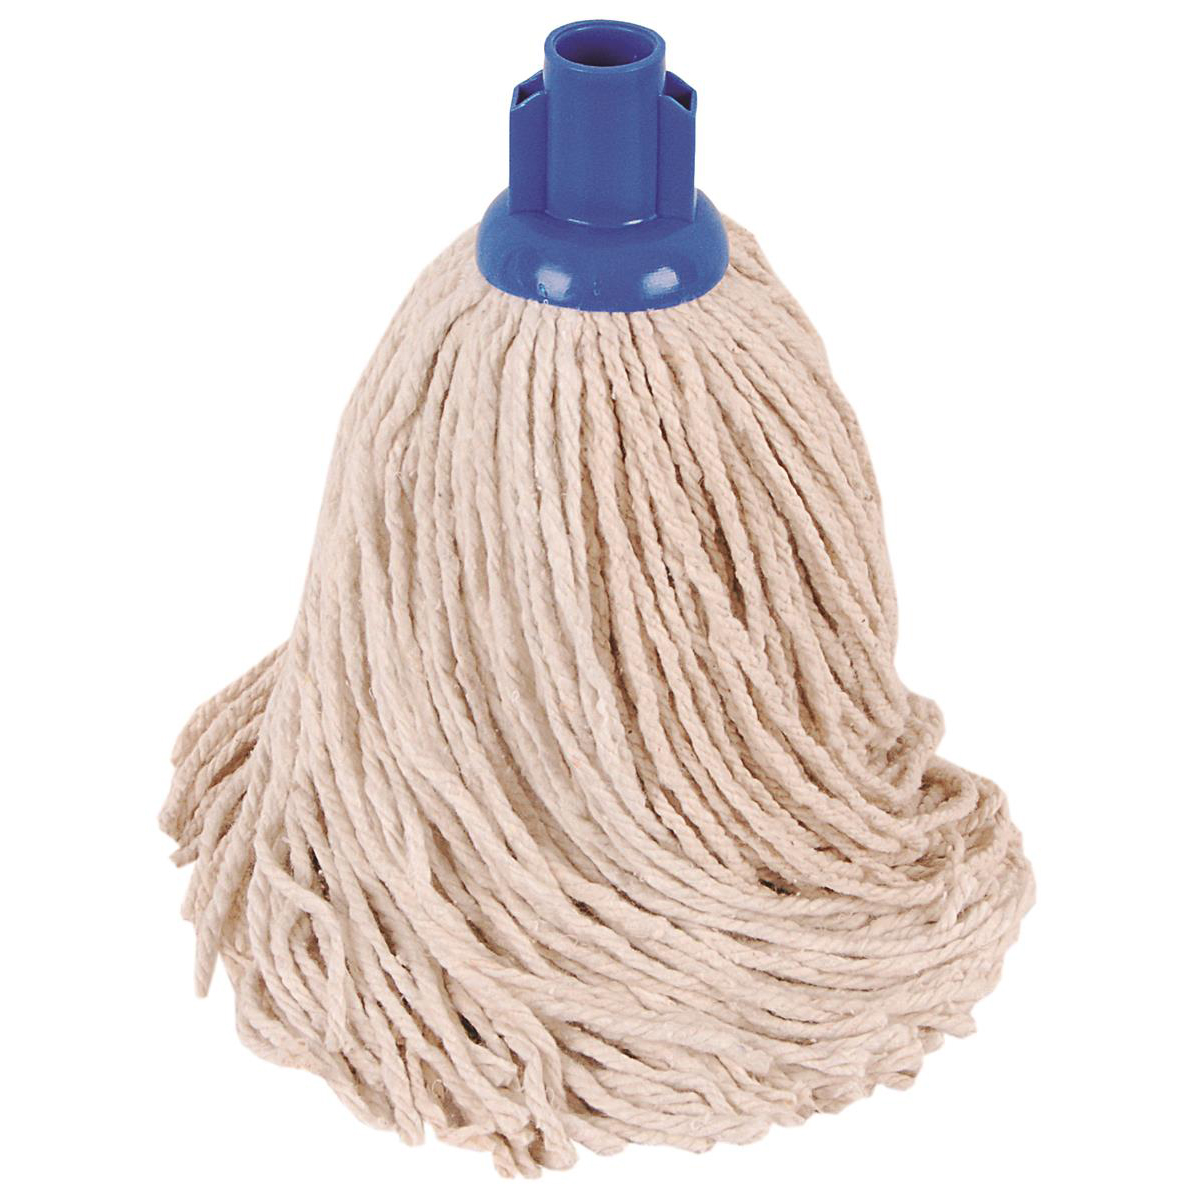 Robert Scott & Sons PY Socket Mop for Smooth Surfaces 16oz Blue Ref 101876BLUE [Pack 10]